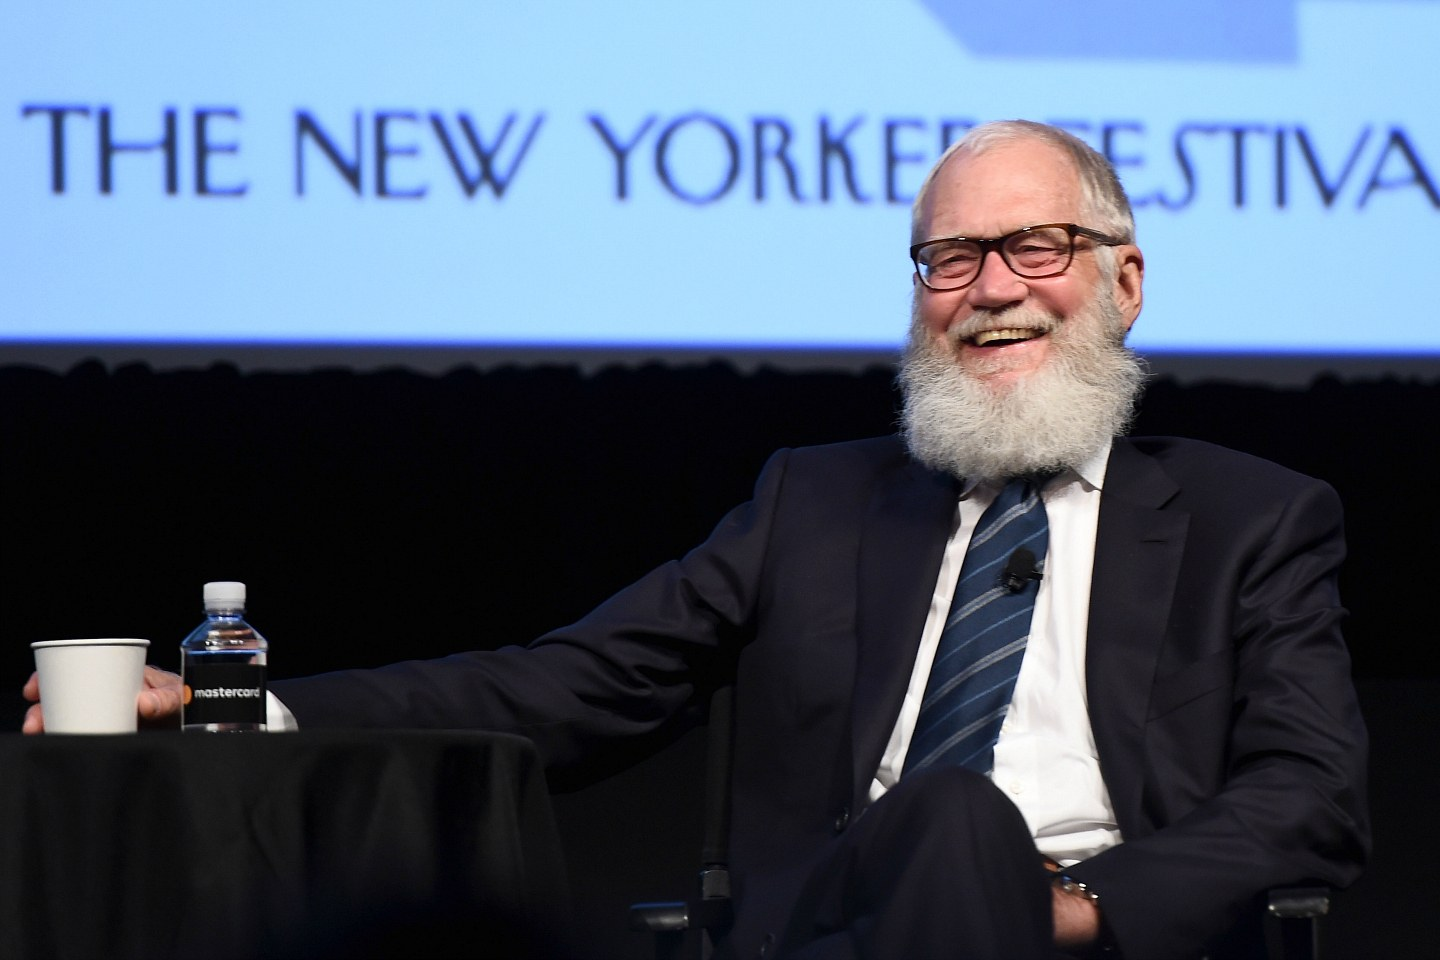 Netflix to launch TV series starring Letterman